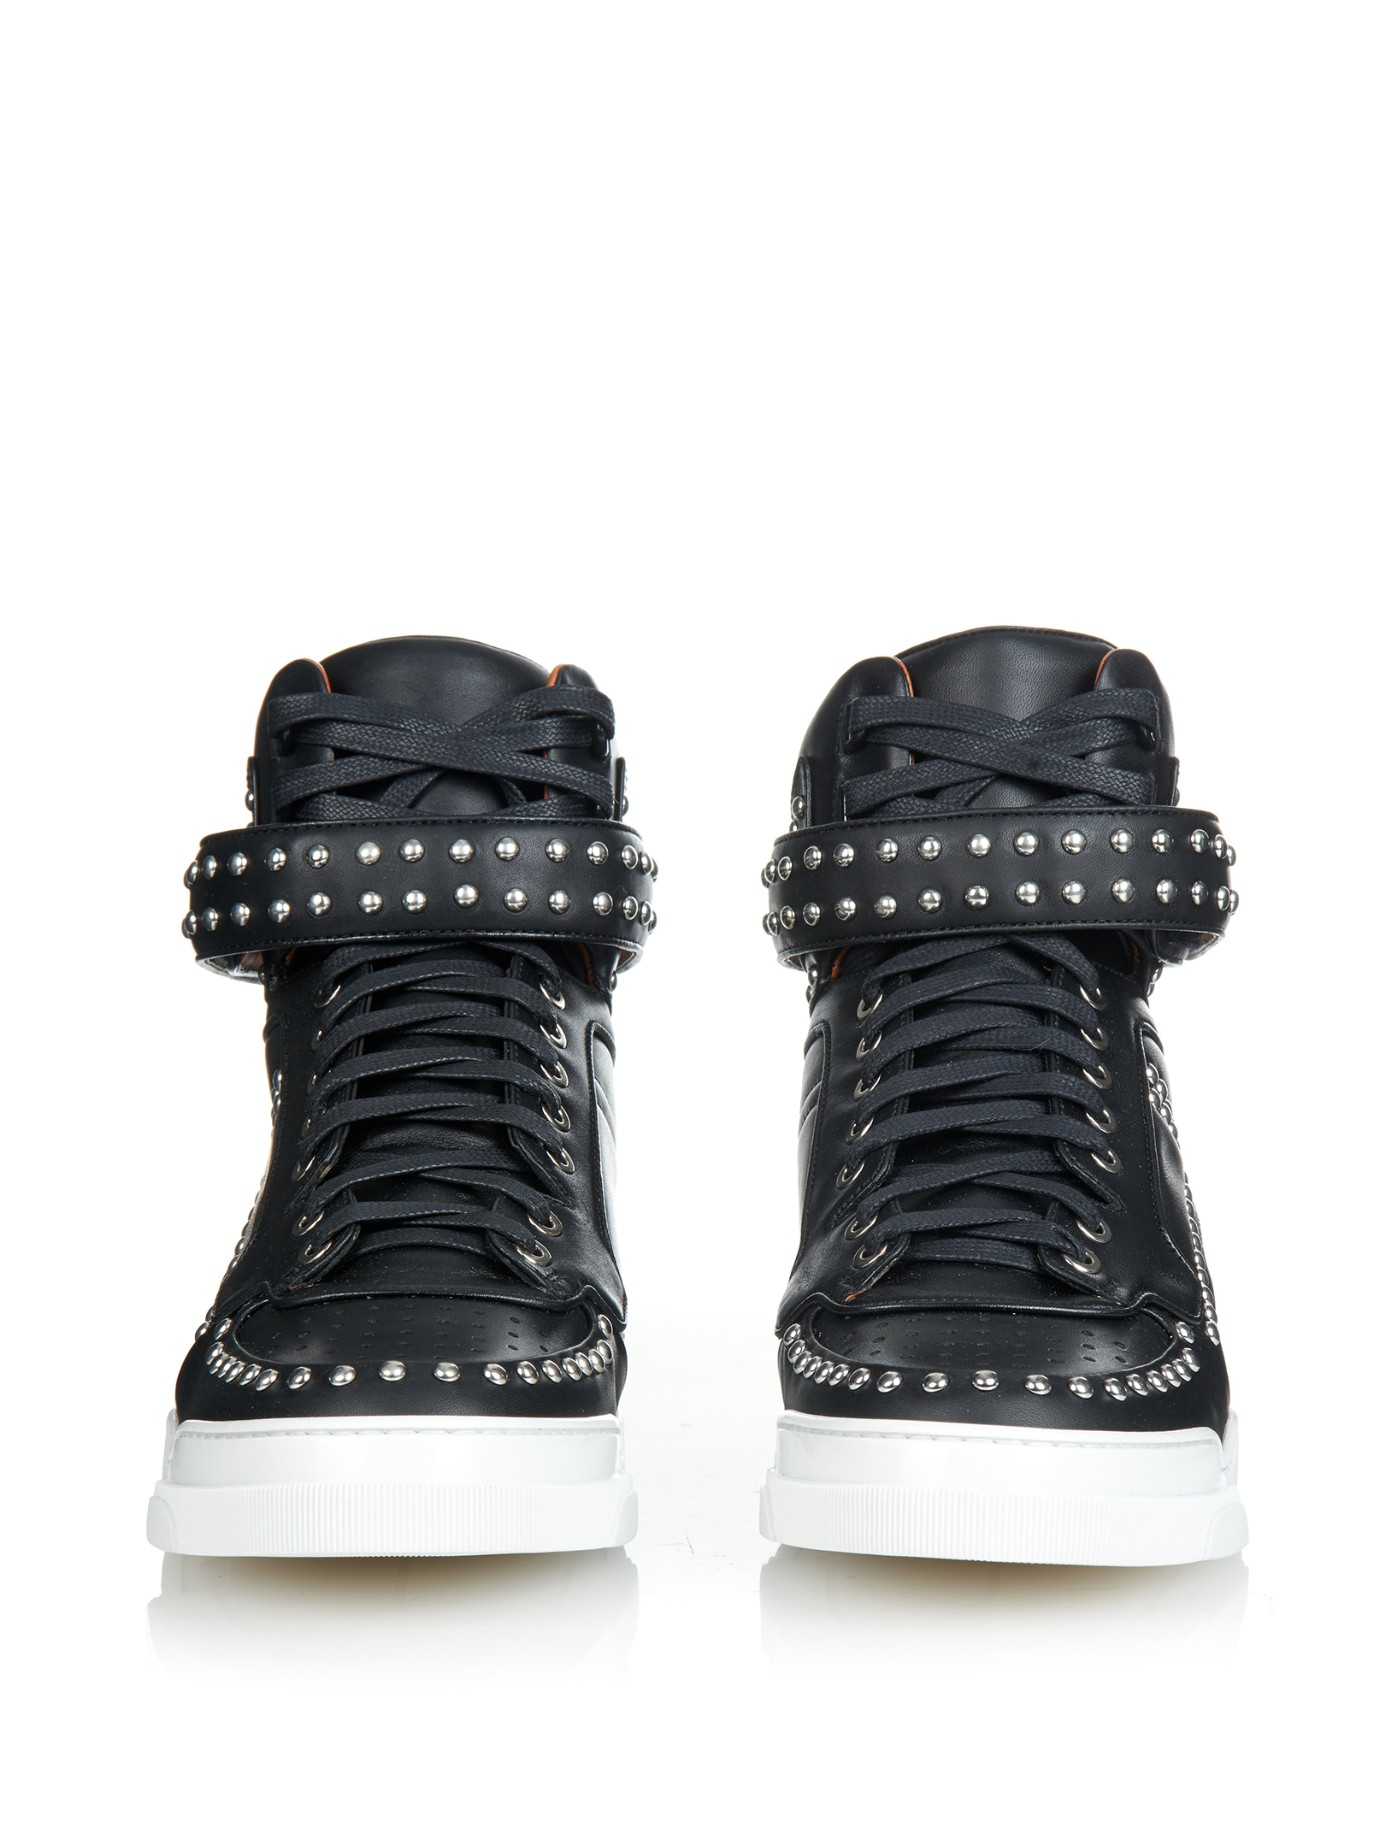 Lyst - Givenchy Tyson Studded Leather High-Top Sneakers in Black d08b82082